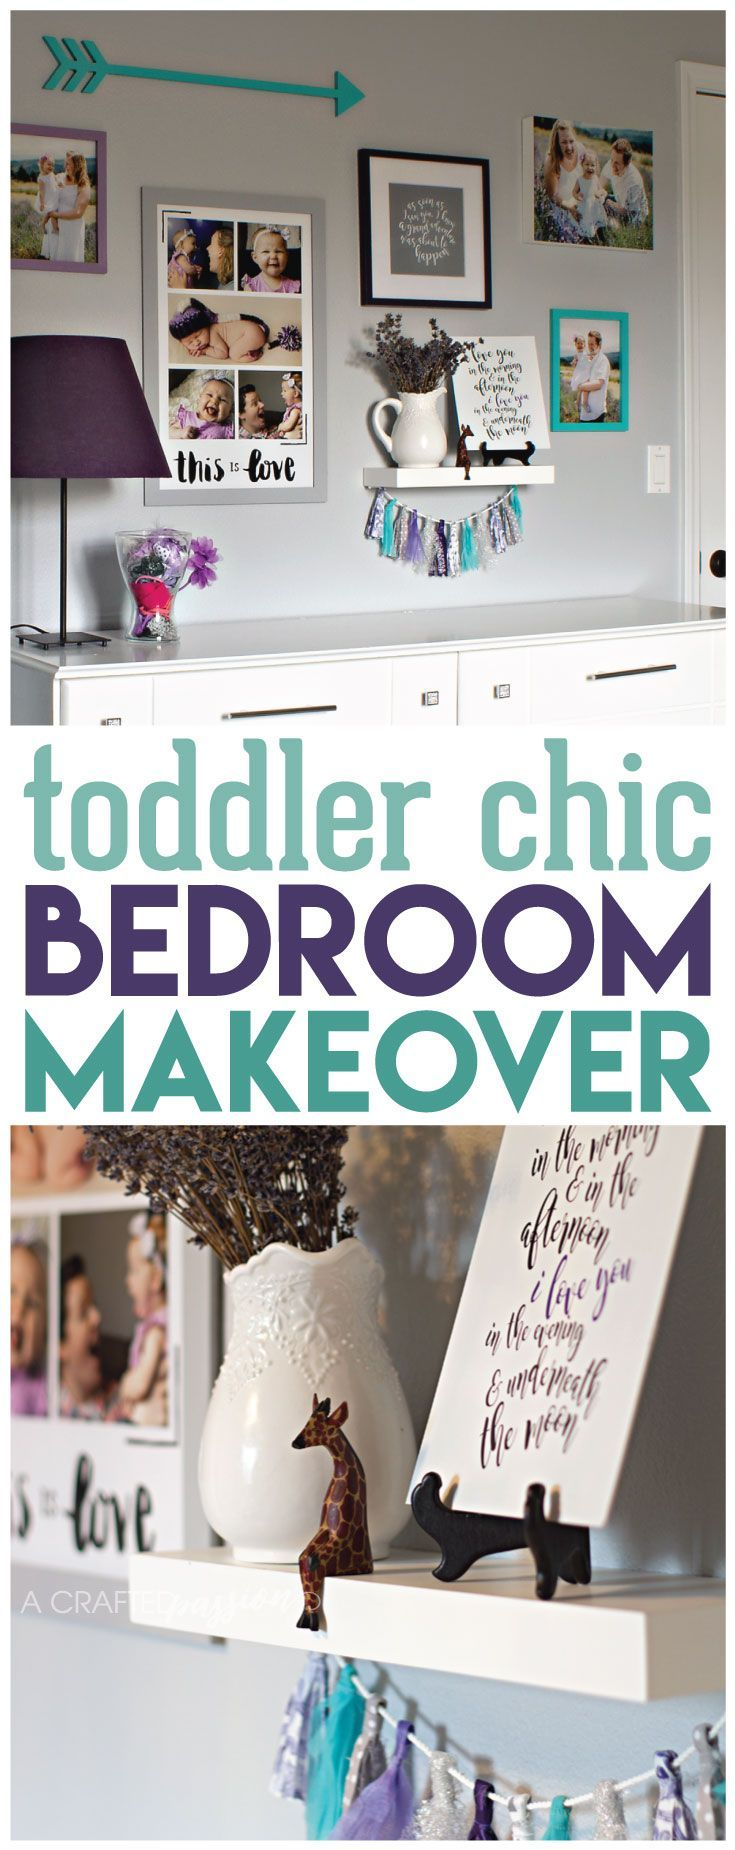 A Toddler Chic Bedroom makeover filled with many DIY decor ideas in a  Montessori inspired. 787 best images about Bedroom on Pinterest   Bedroom makeovers